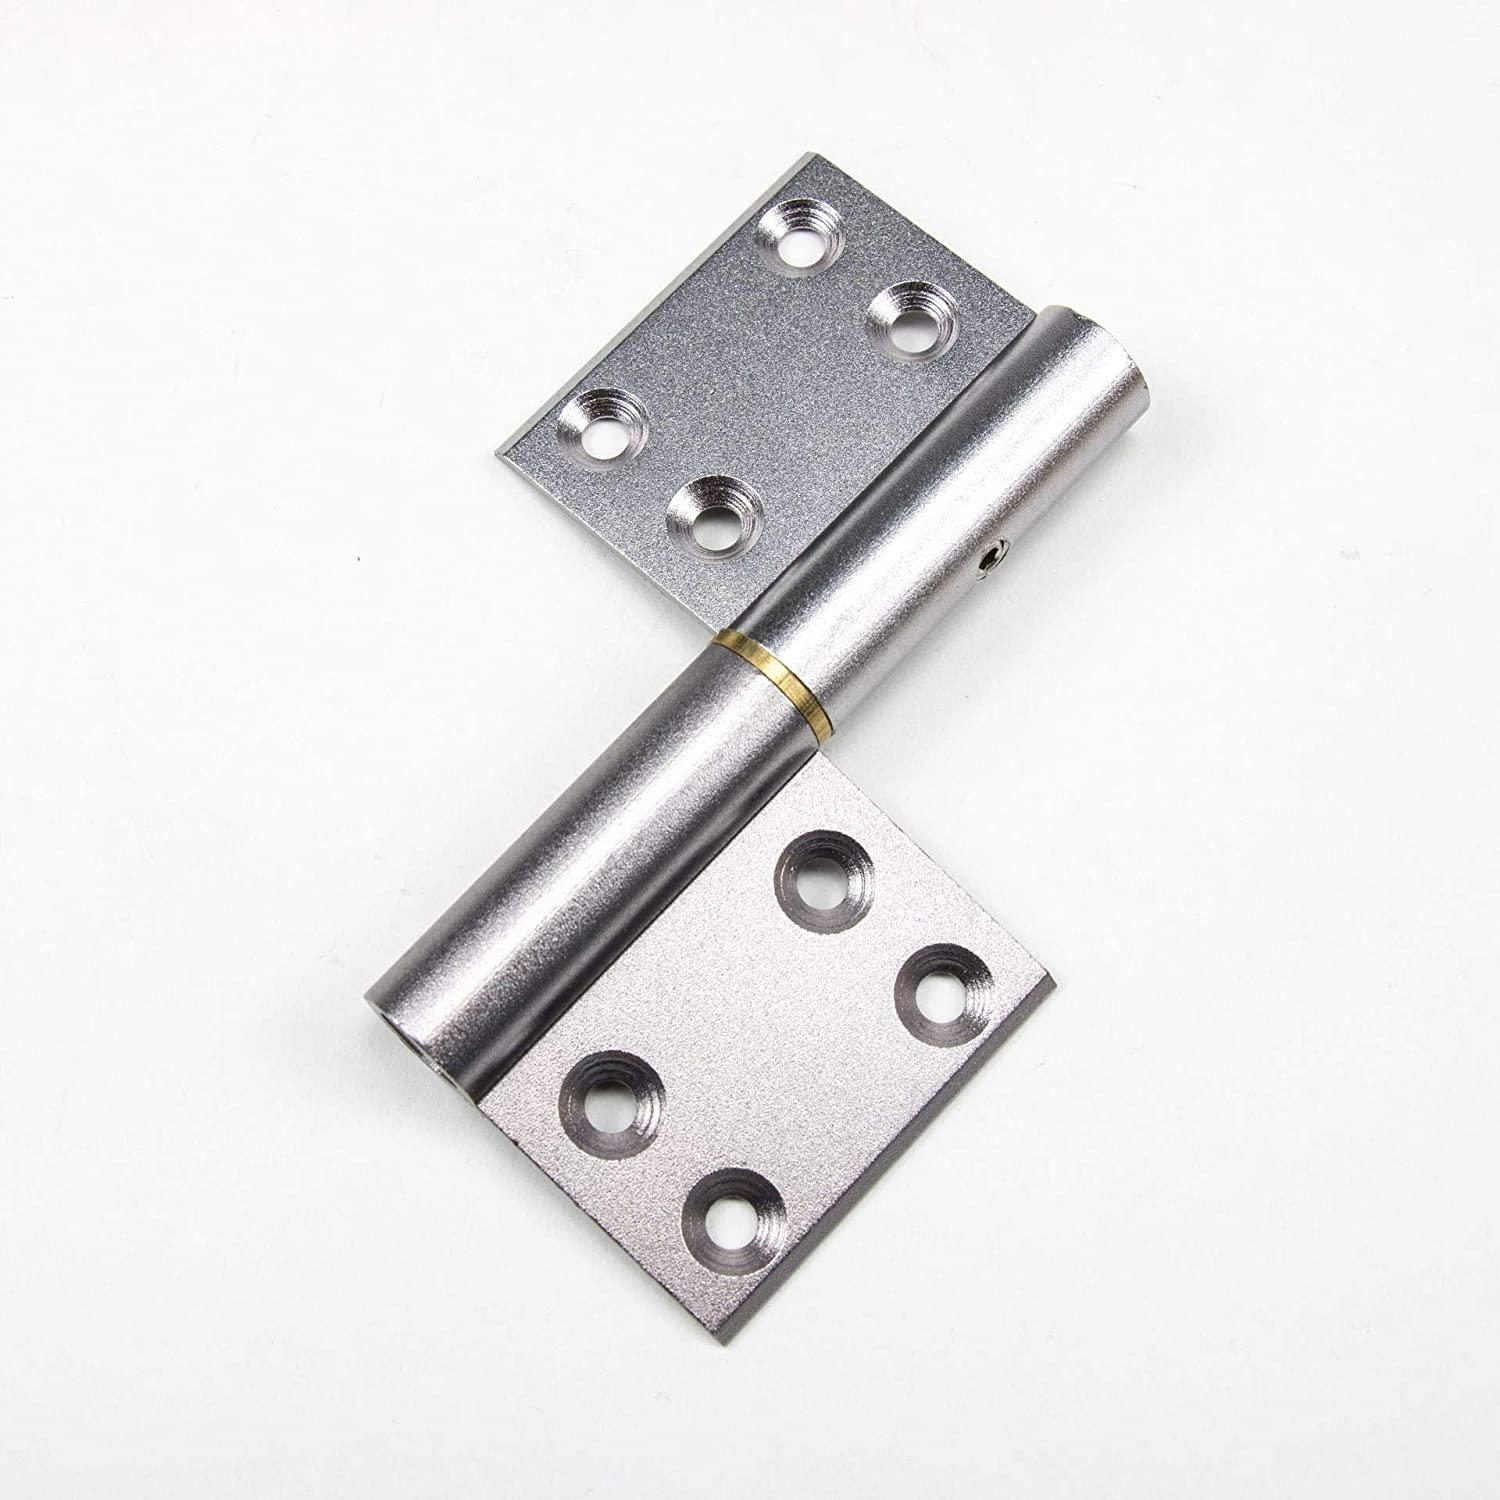 Stainless Steel Hinges Flat Hinges Thickened Wooden Door Cabinets Wardrobe Doors and Windows Hardware Accessories